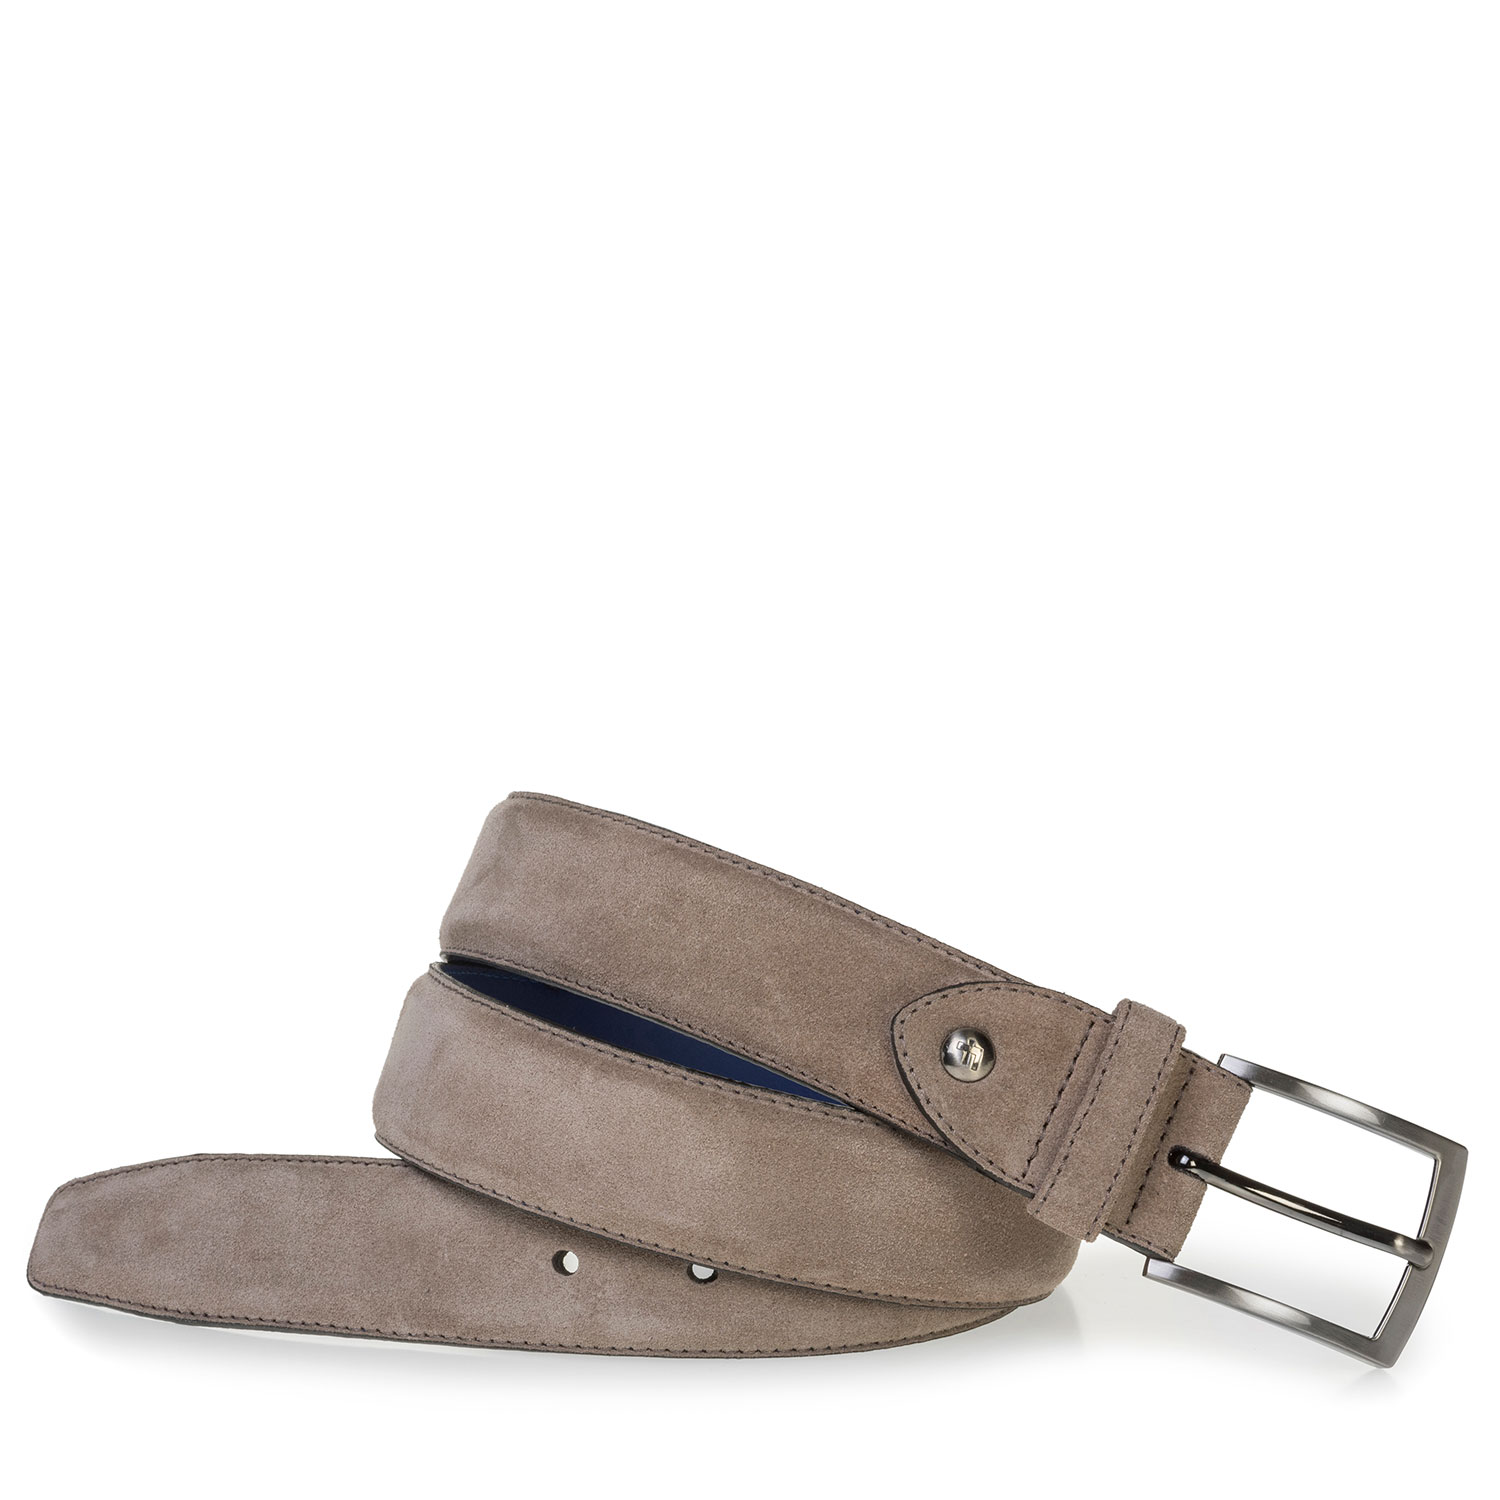 75201/68 - Beige suede leather belt